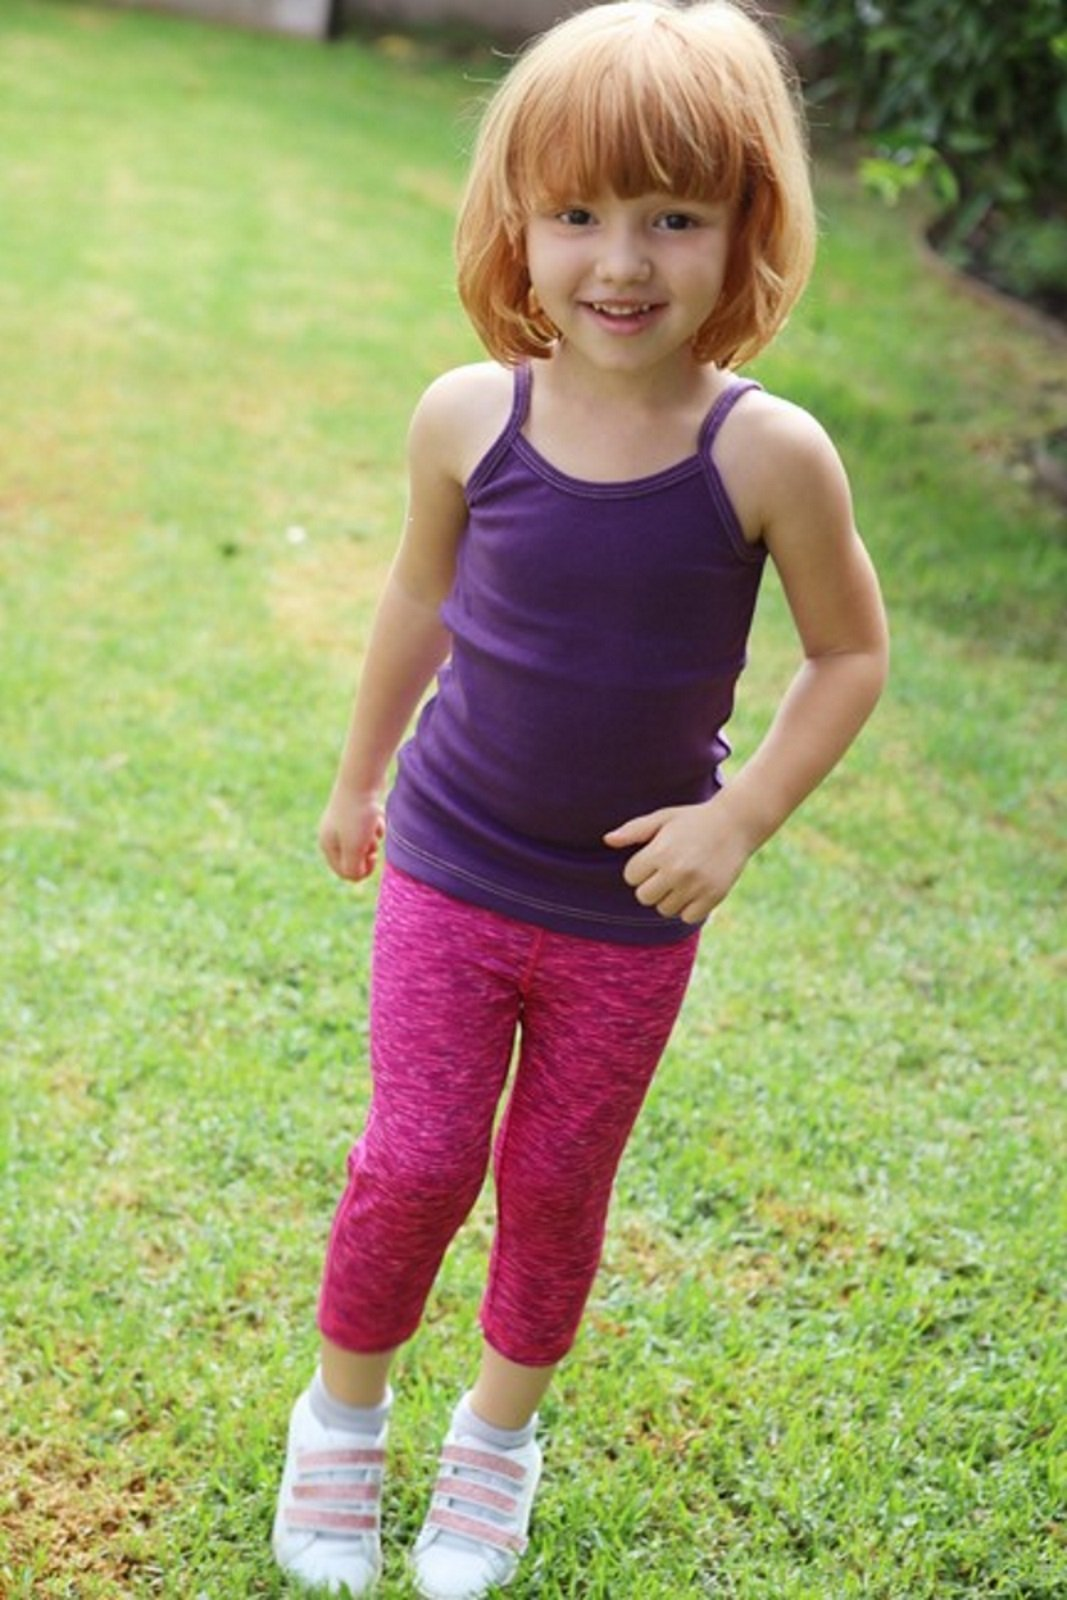 City Threads Girls' Workout Leggings Capri Summer High Performance Legging For School Camp Sports Dance Gymnastics and Playing, Pink/Purple/Black, 16 by City Threads (Image #3)